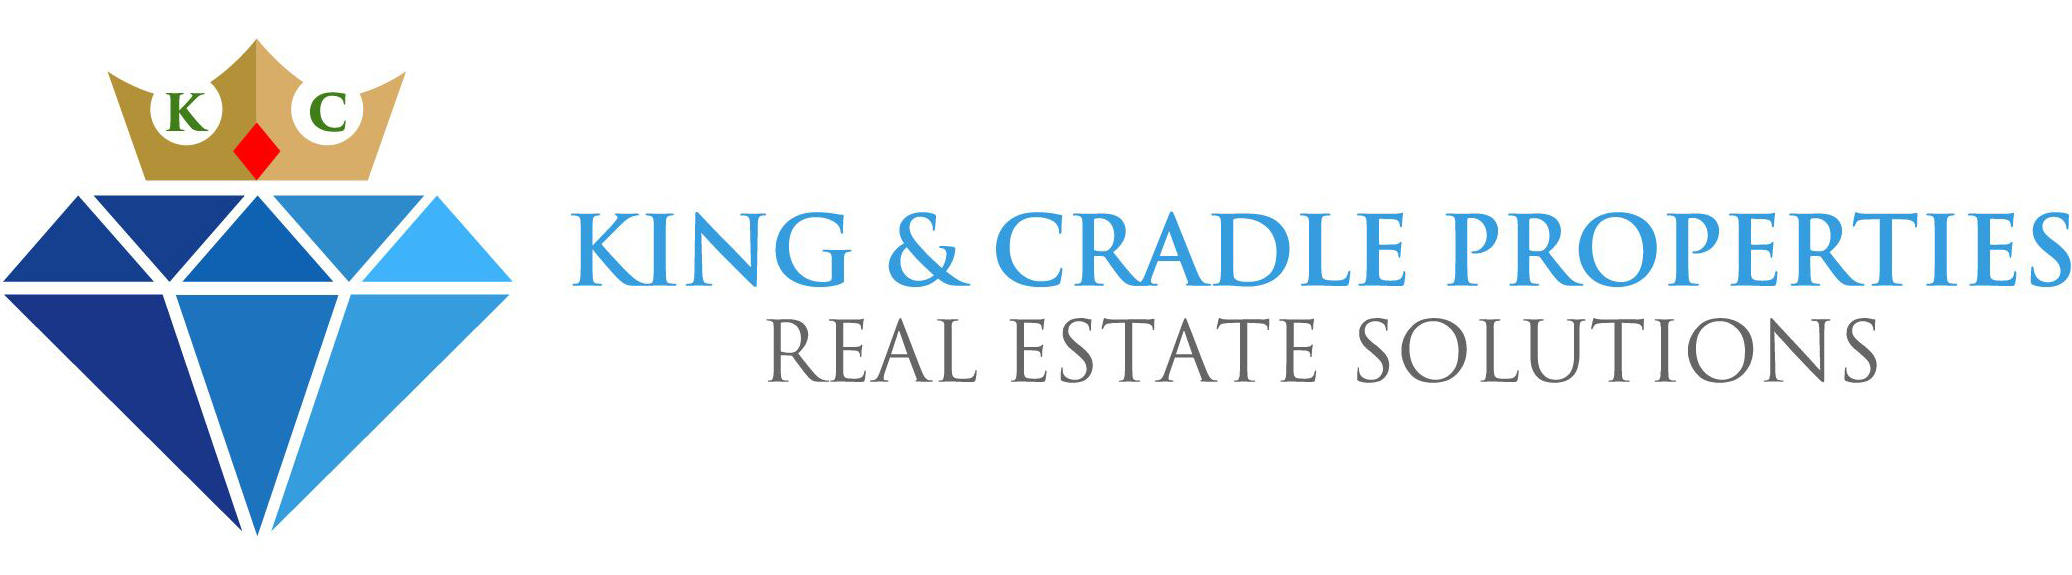 King & Cradle Properties, LLC